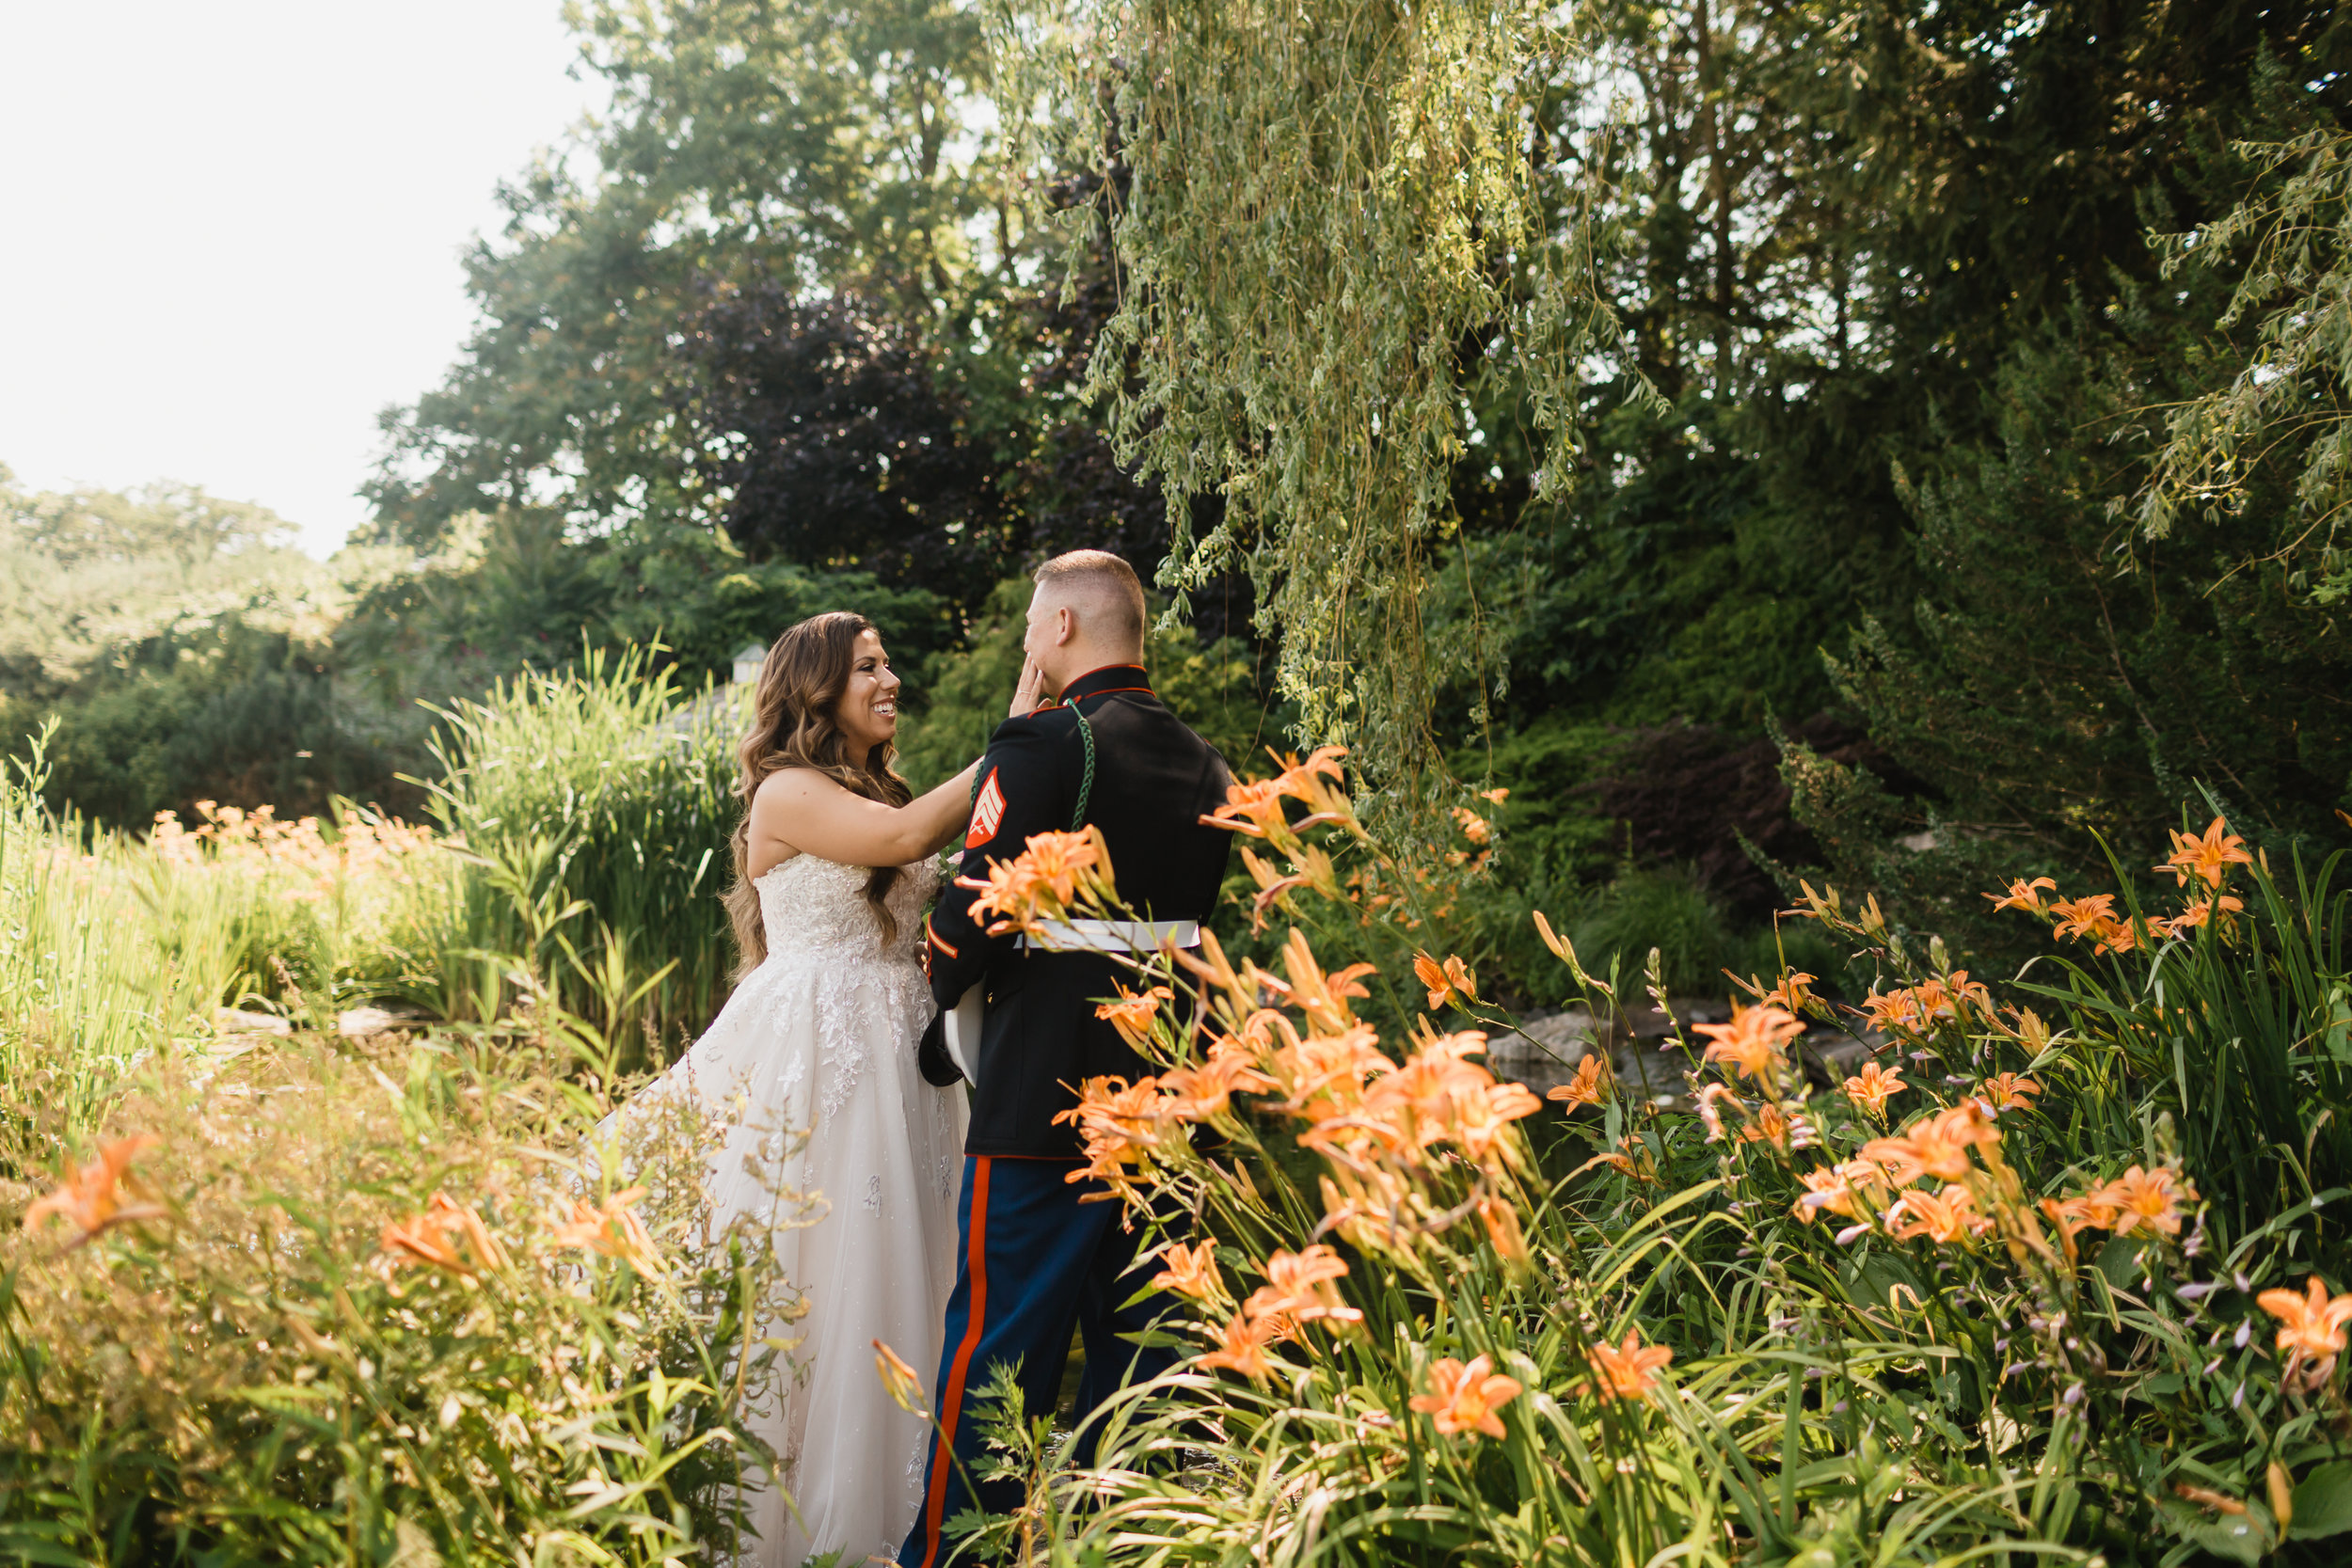 Gianna Keiko Atlanta NYC California Wedding Photographer_Sneak Peek-34.jpg